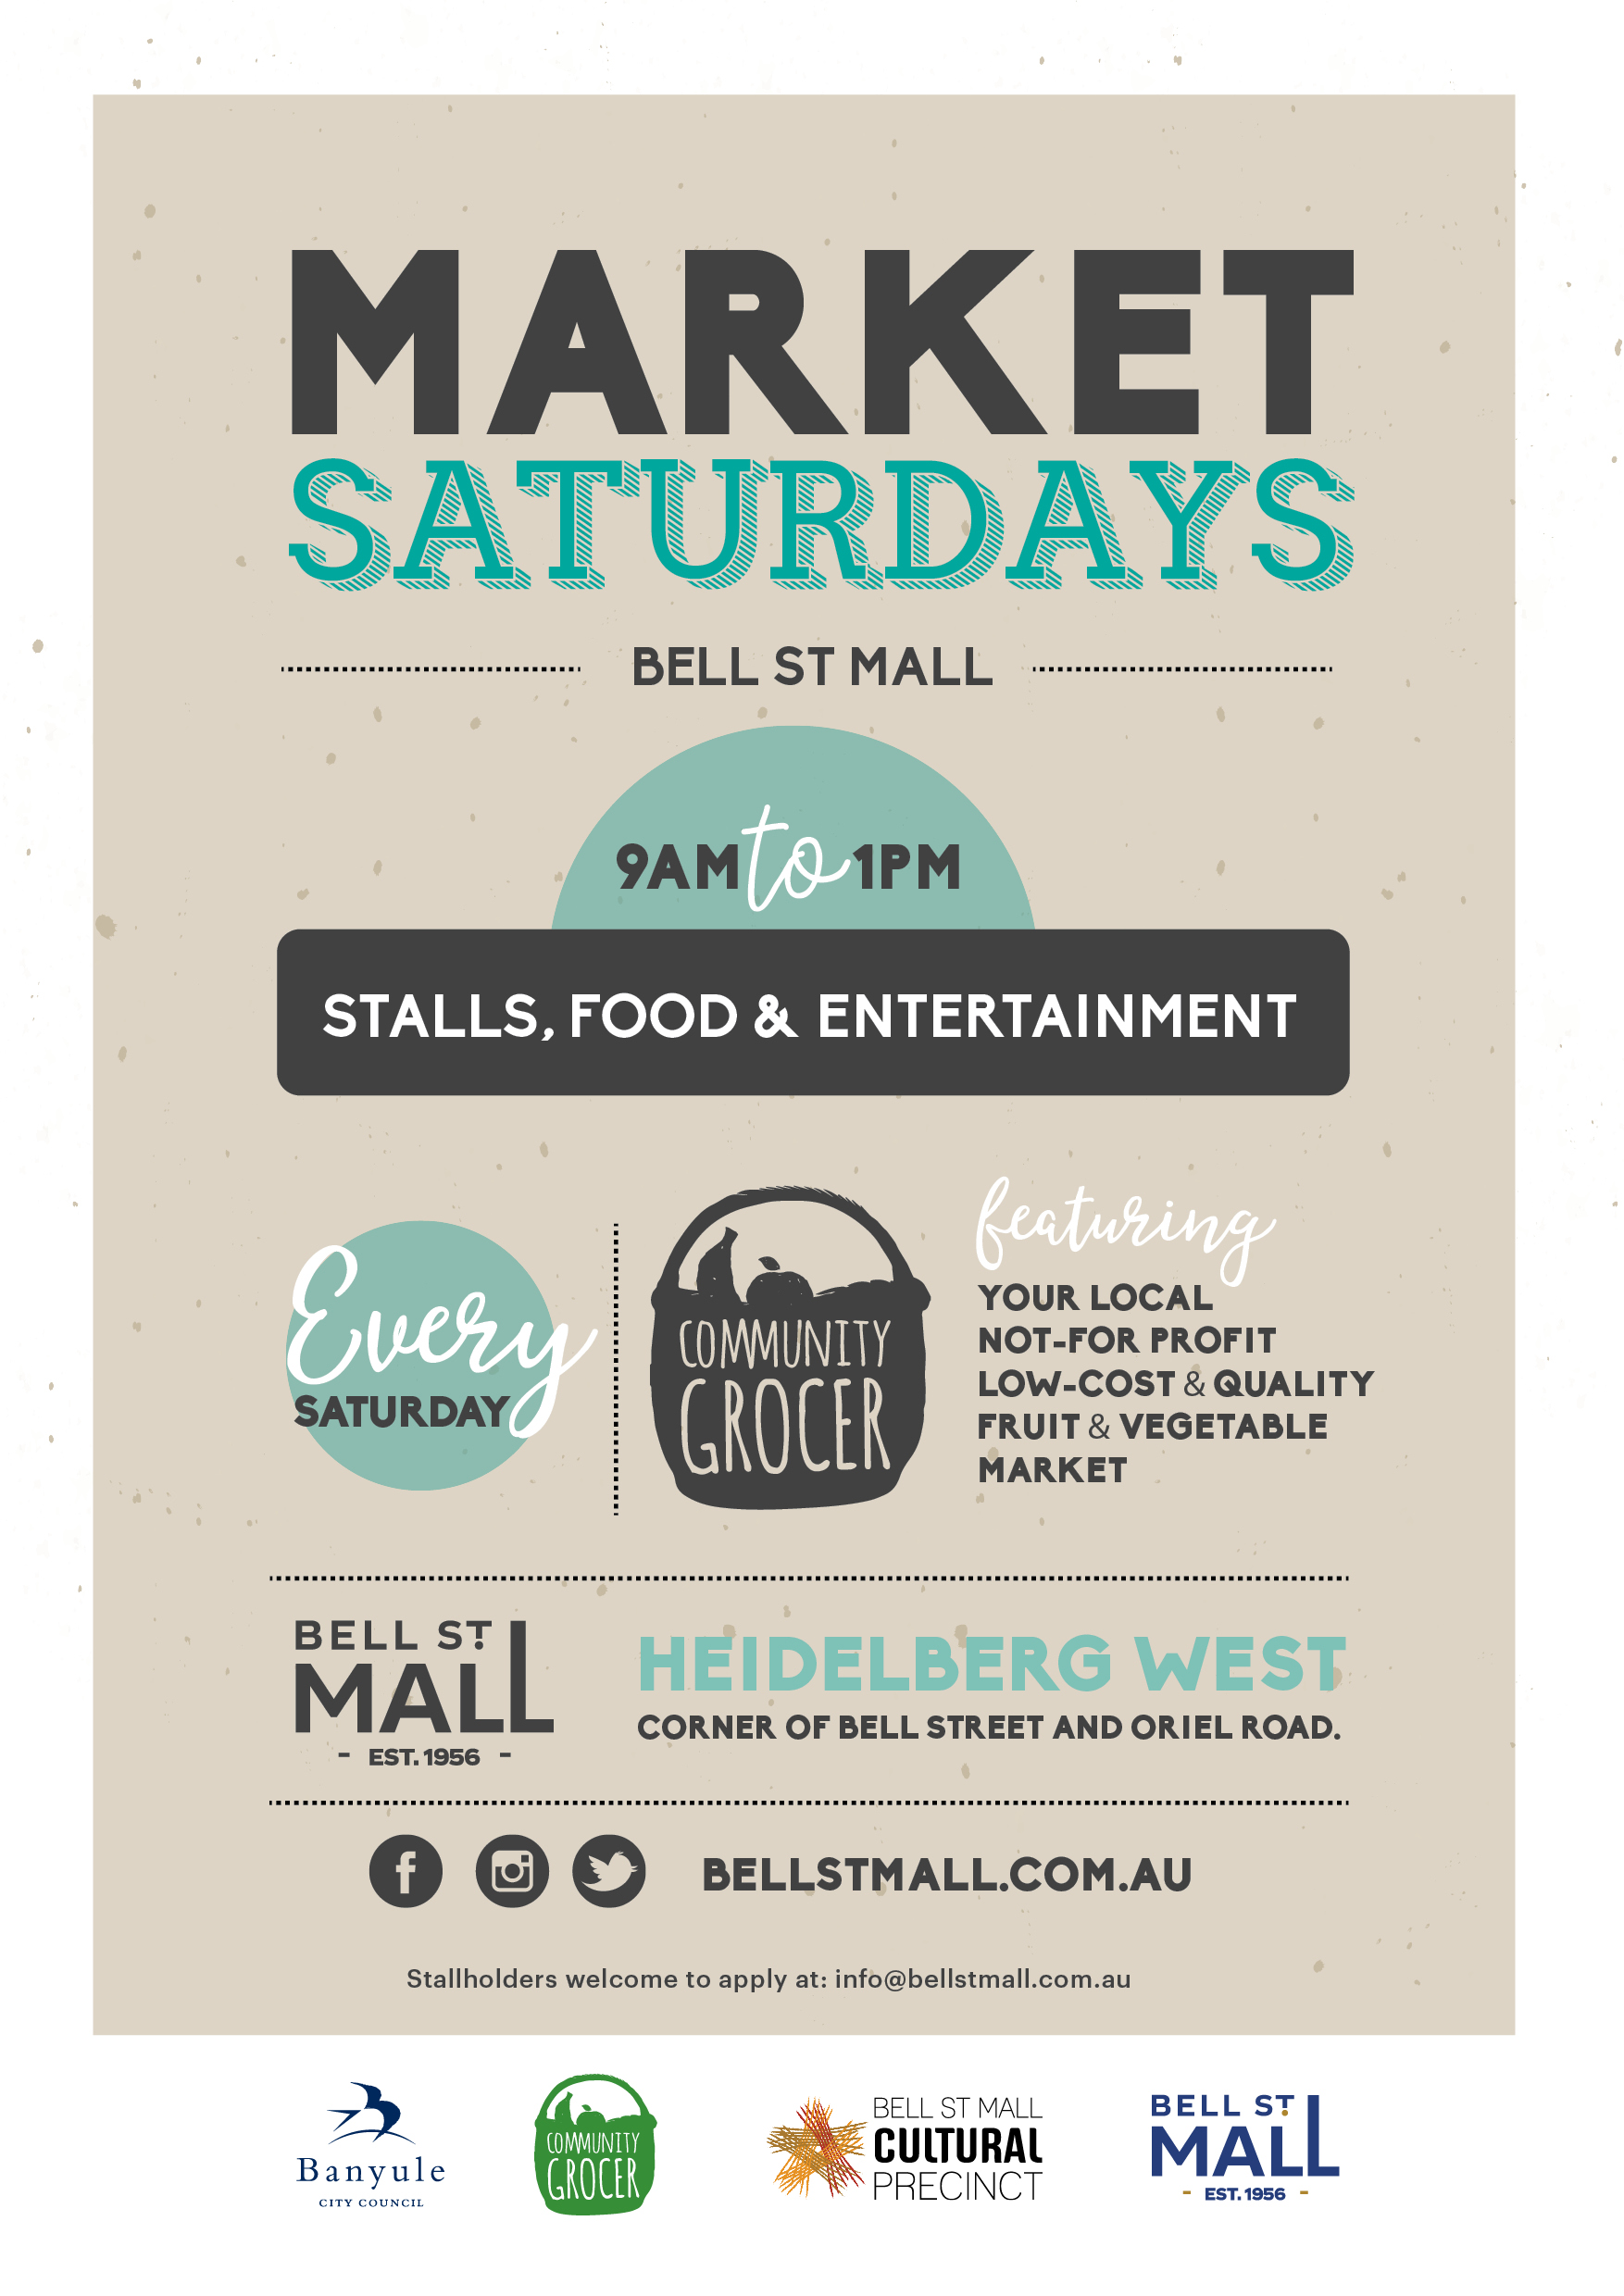 Bell St Mall Markets